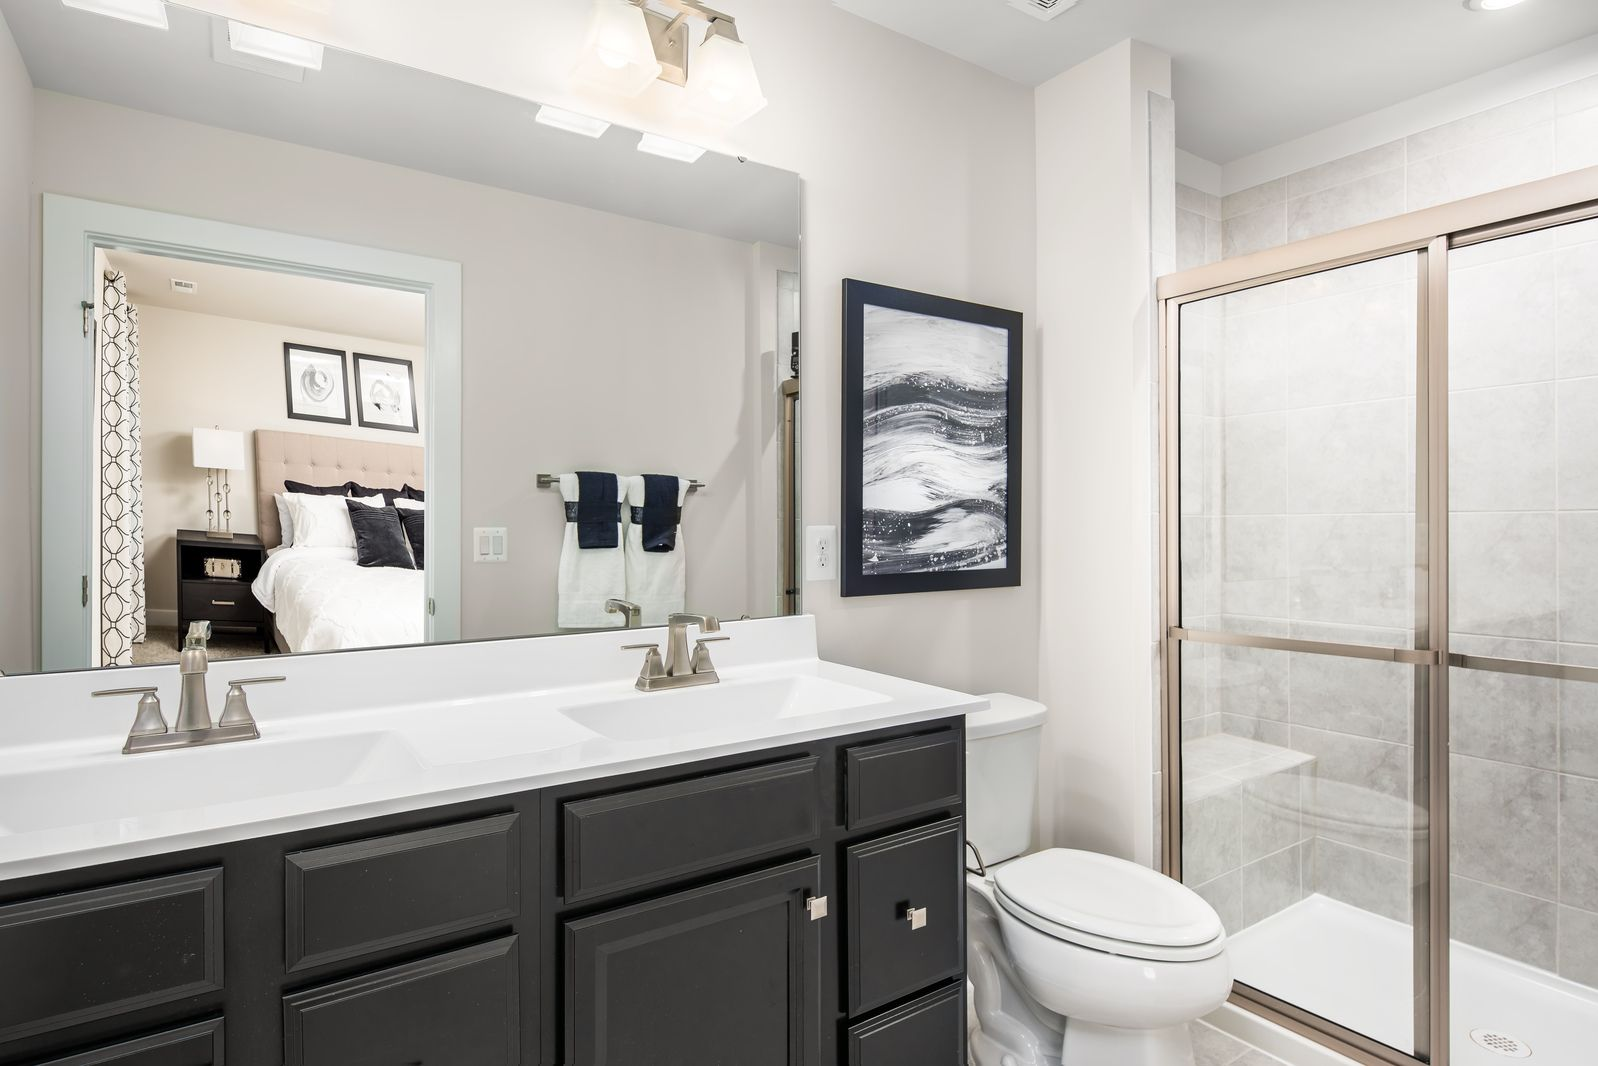 Bathroom featured in the Cayman By Ryan Homes in Rochester, NY